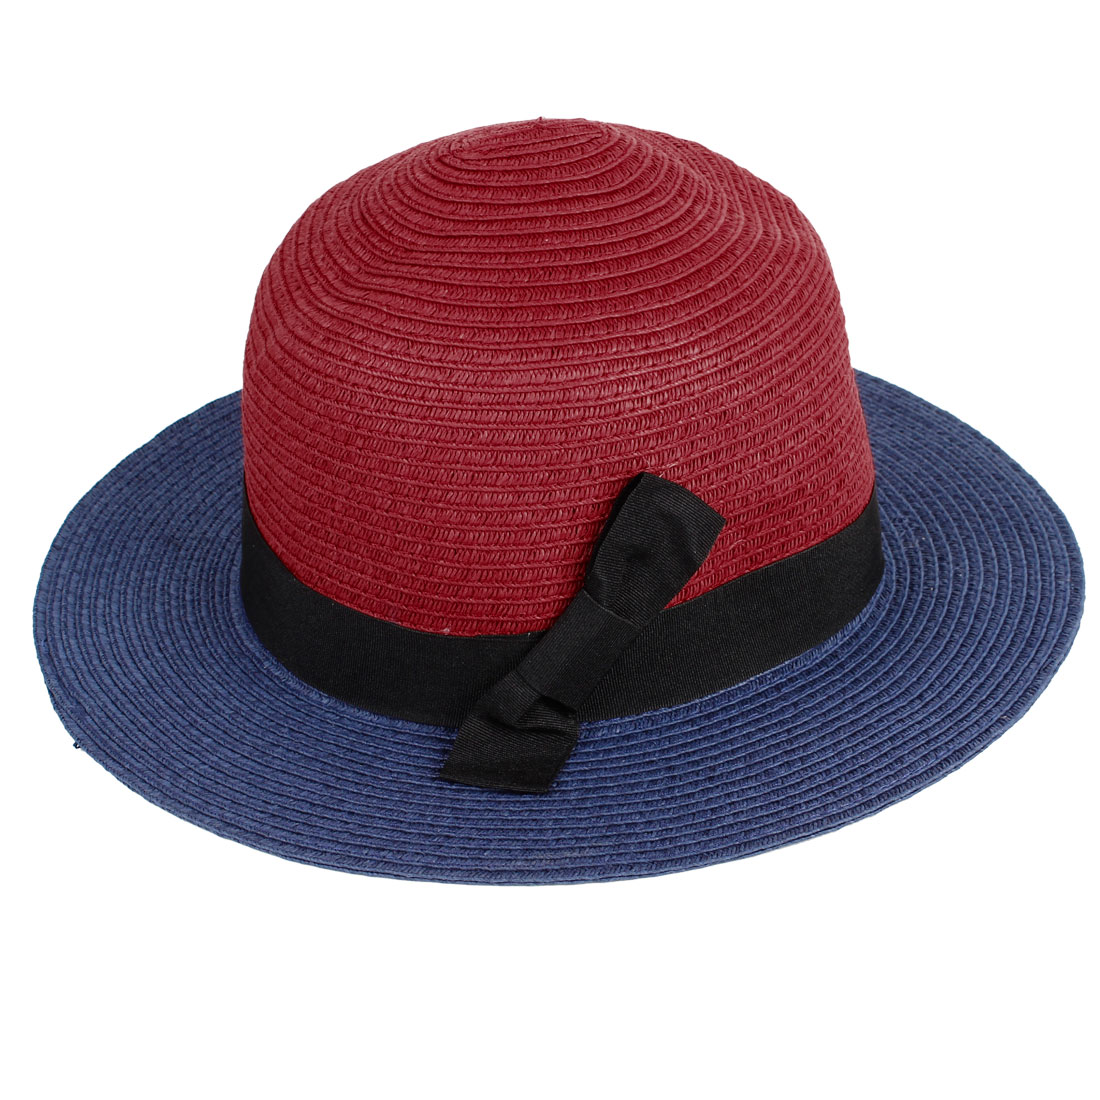 Black Ribbon Decor Red Navy Blue Braided Straw Casual Bucket Hat for Ladies